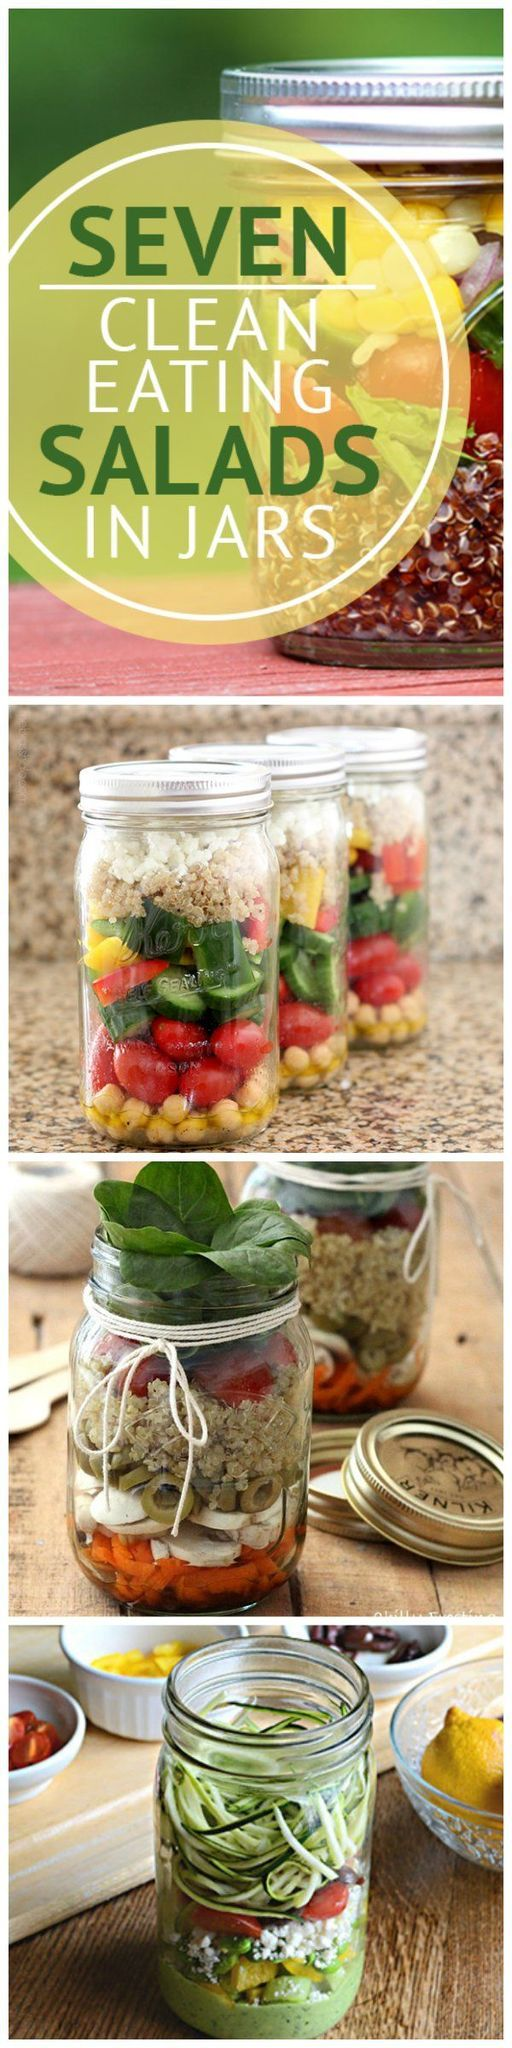 Cute, practical, and tasty! 7 Clean Eating Salads in Jars! #SkinnyMs